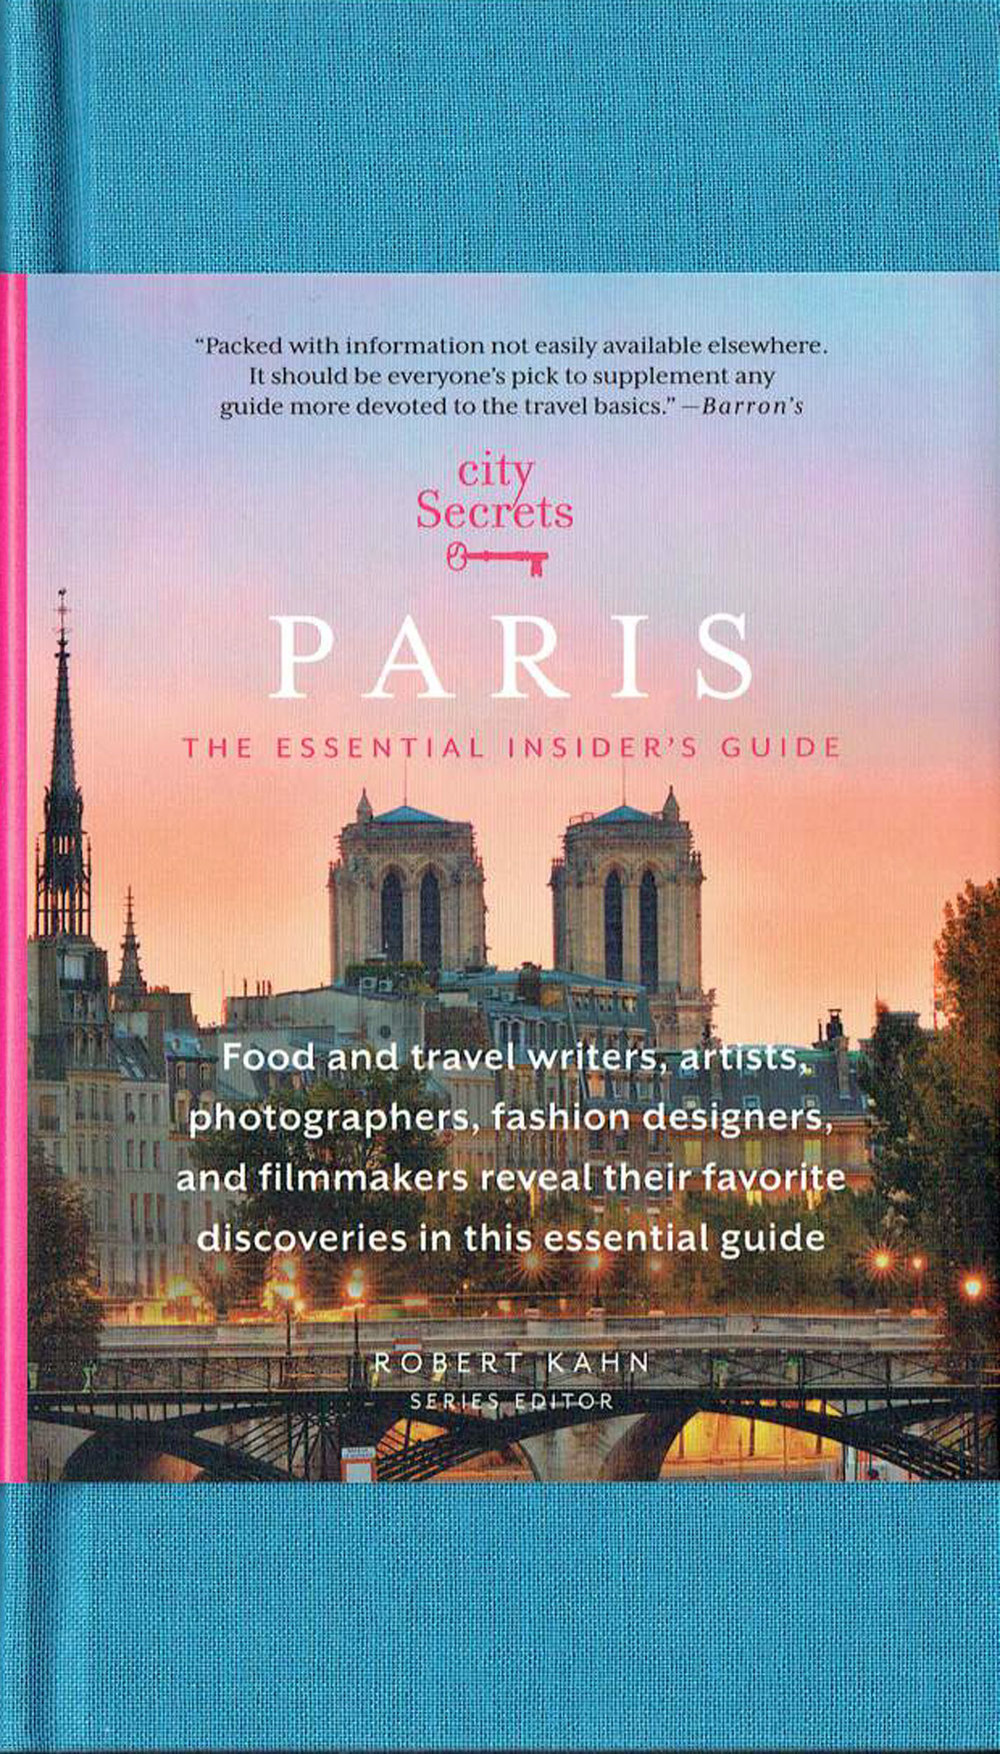 Paris-cover.compressed.jpg